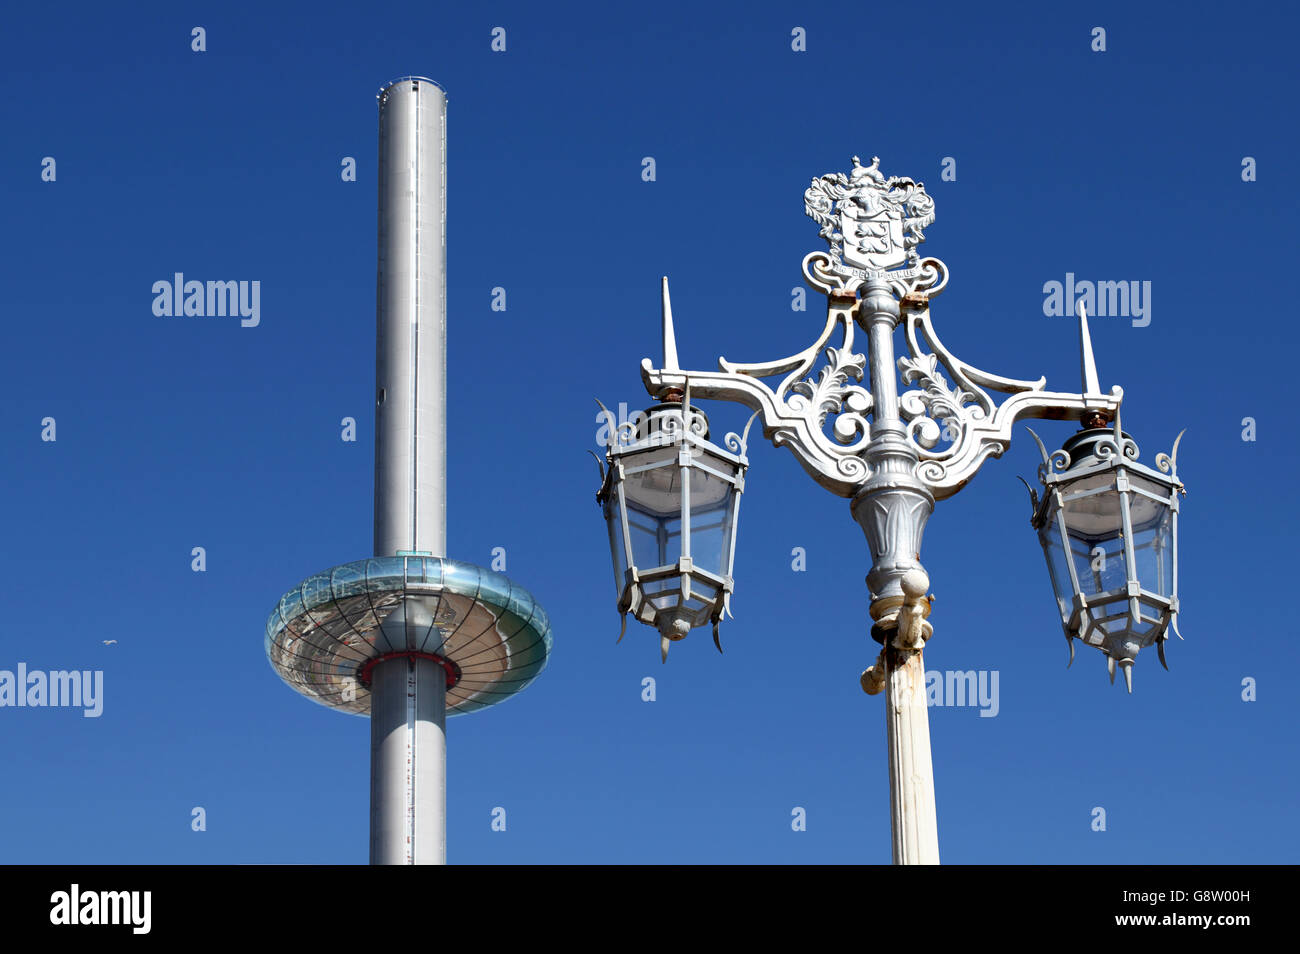 Contrasting styles of design on Brighton seafront: the new i360 vertical cable car and a traditional lamppost. - Stock Image